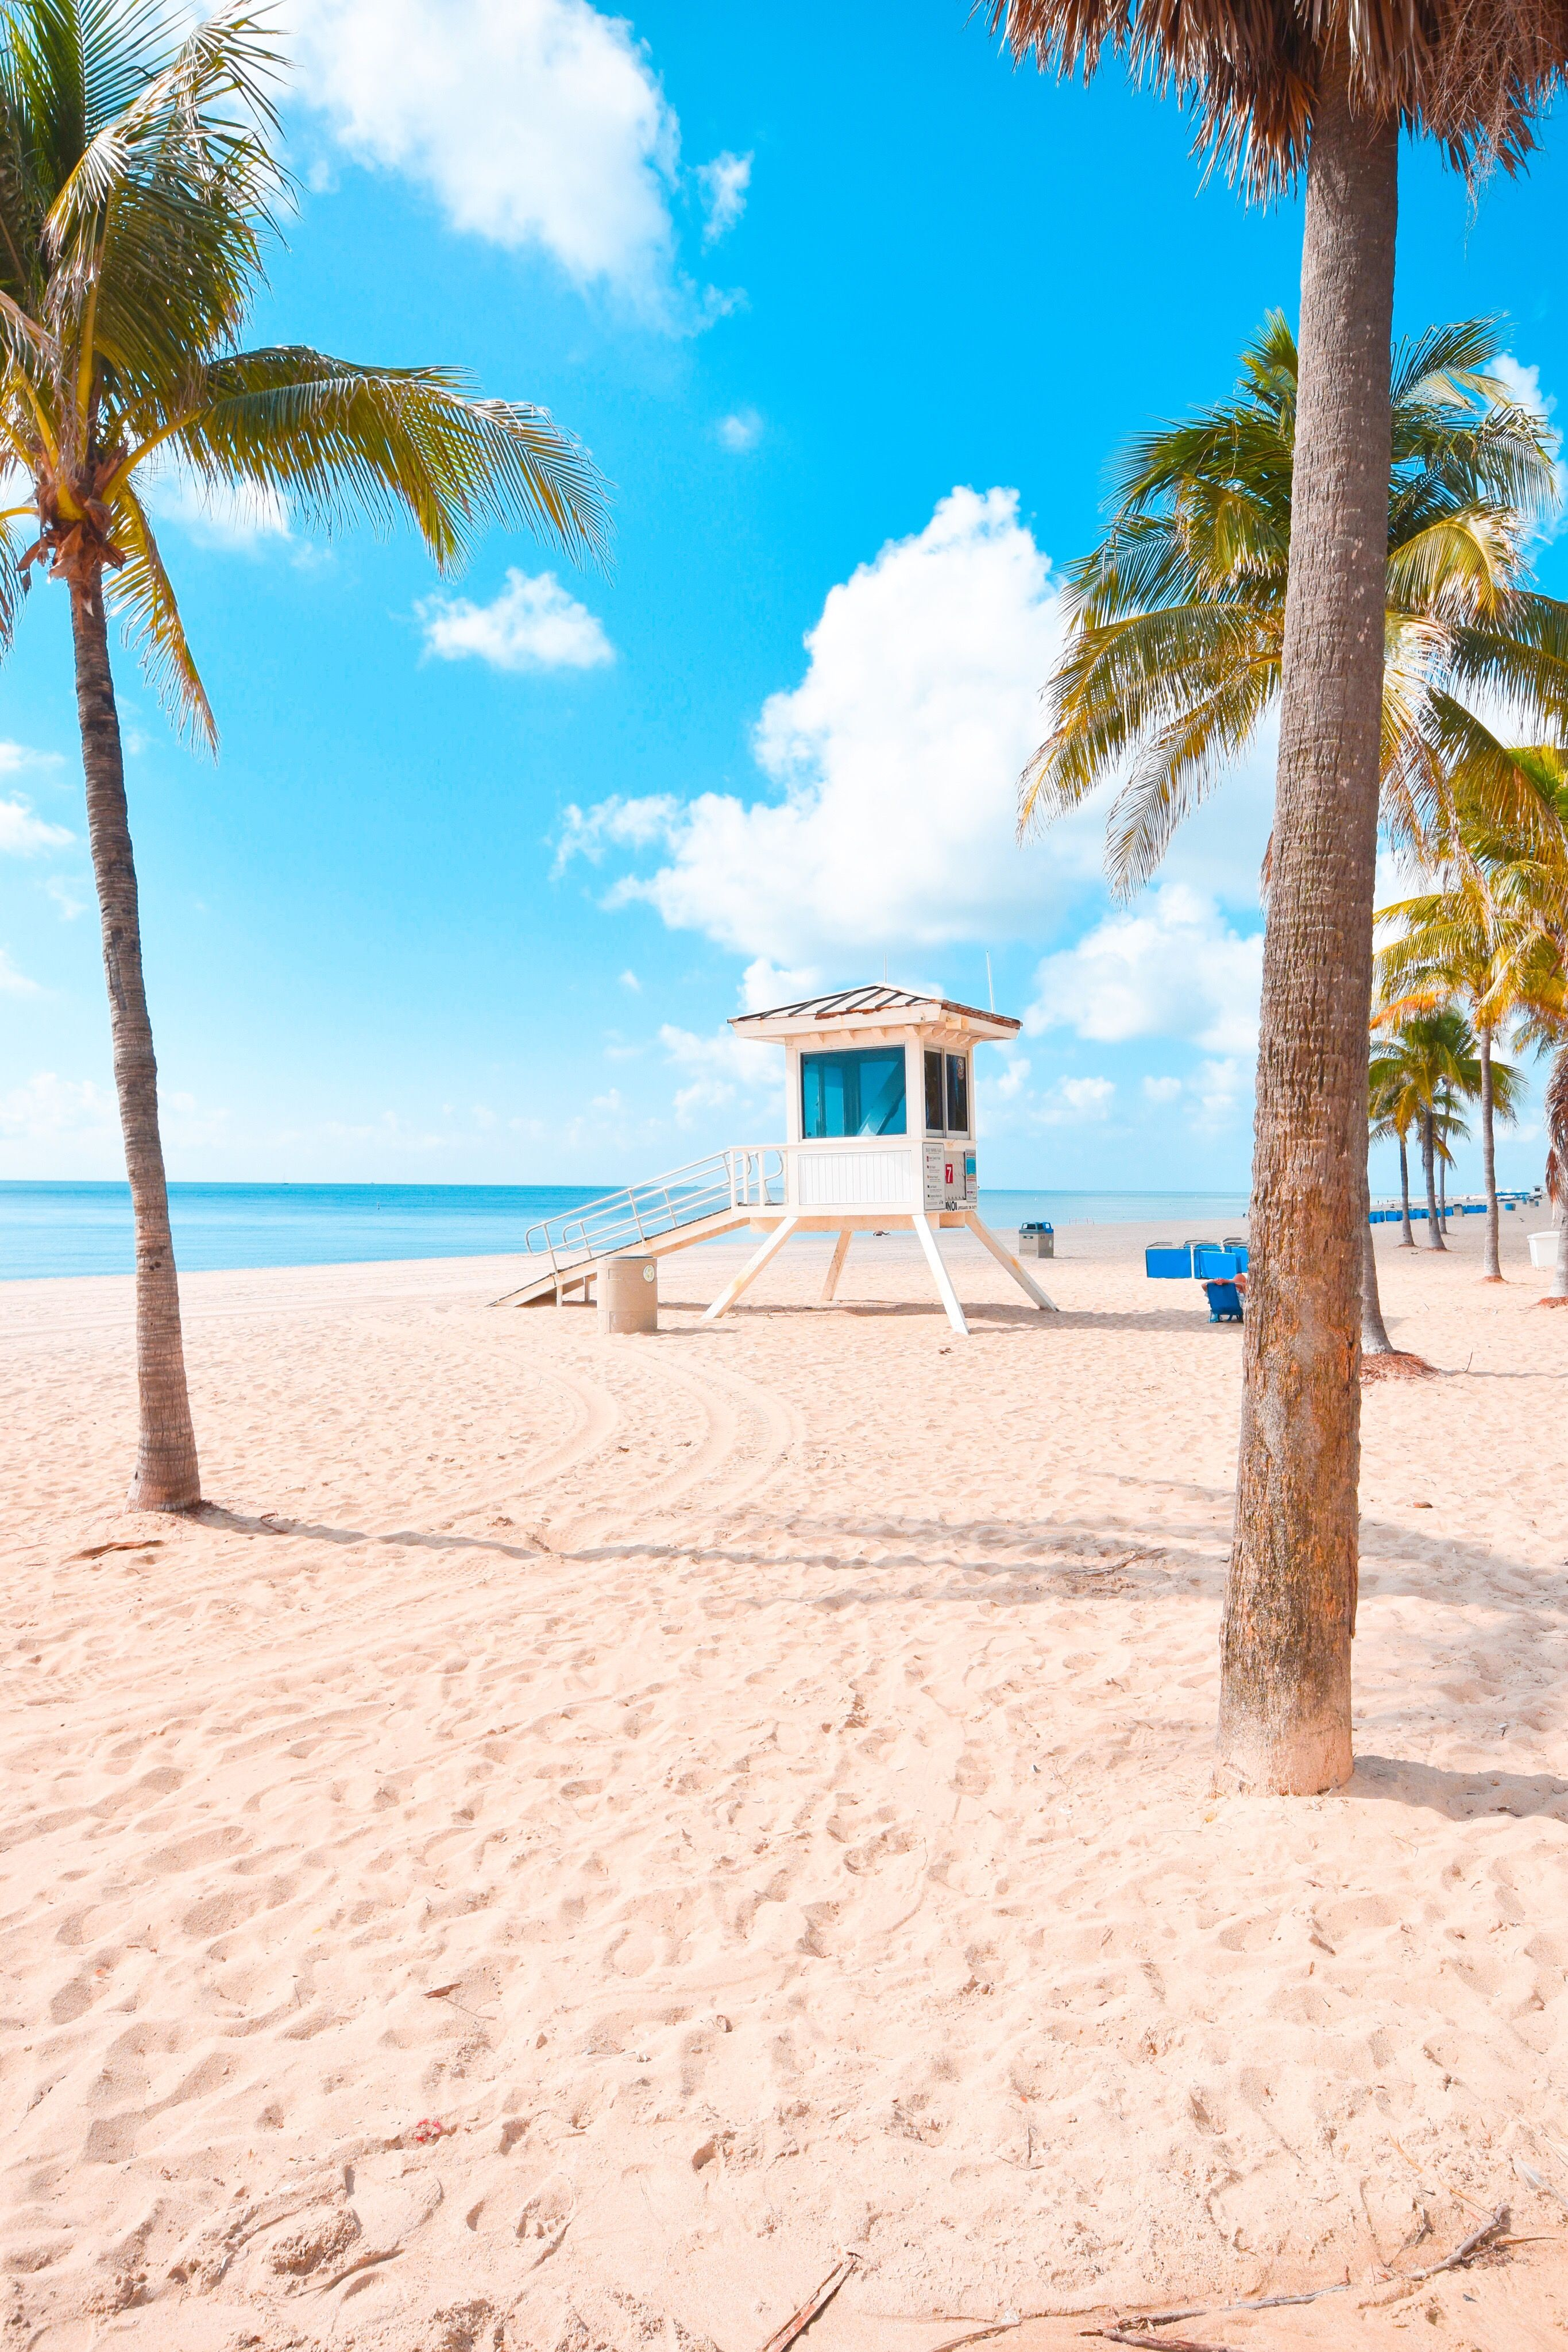 Blue Skies And Beautiful Beaches Are Everywhere In Fort Lauderdale Beautiful Beaches Paradise Tropical Beach Vacations Summer Beach Pictures